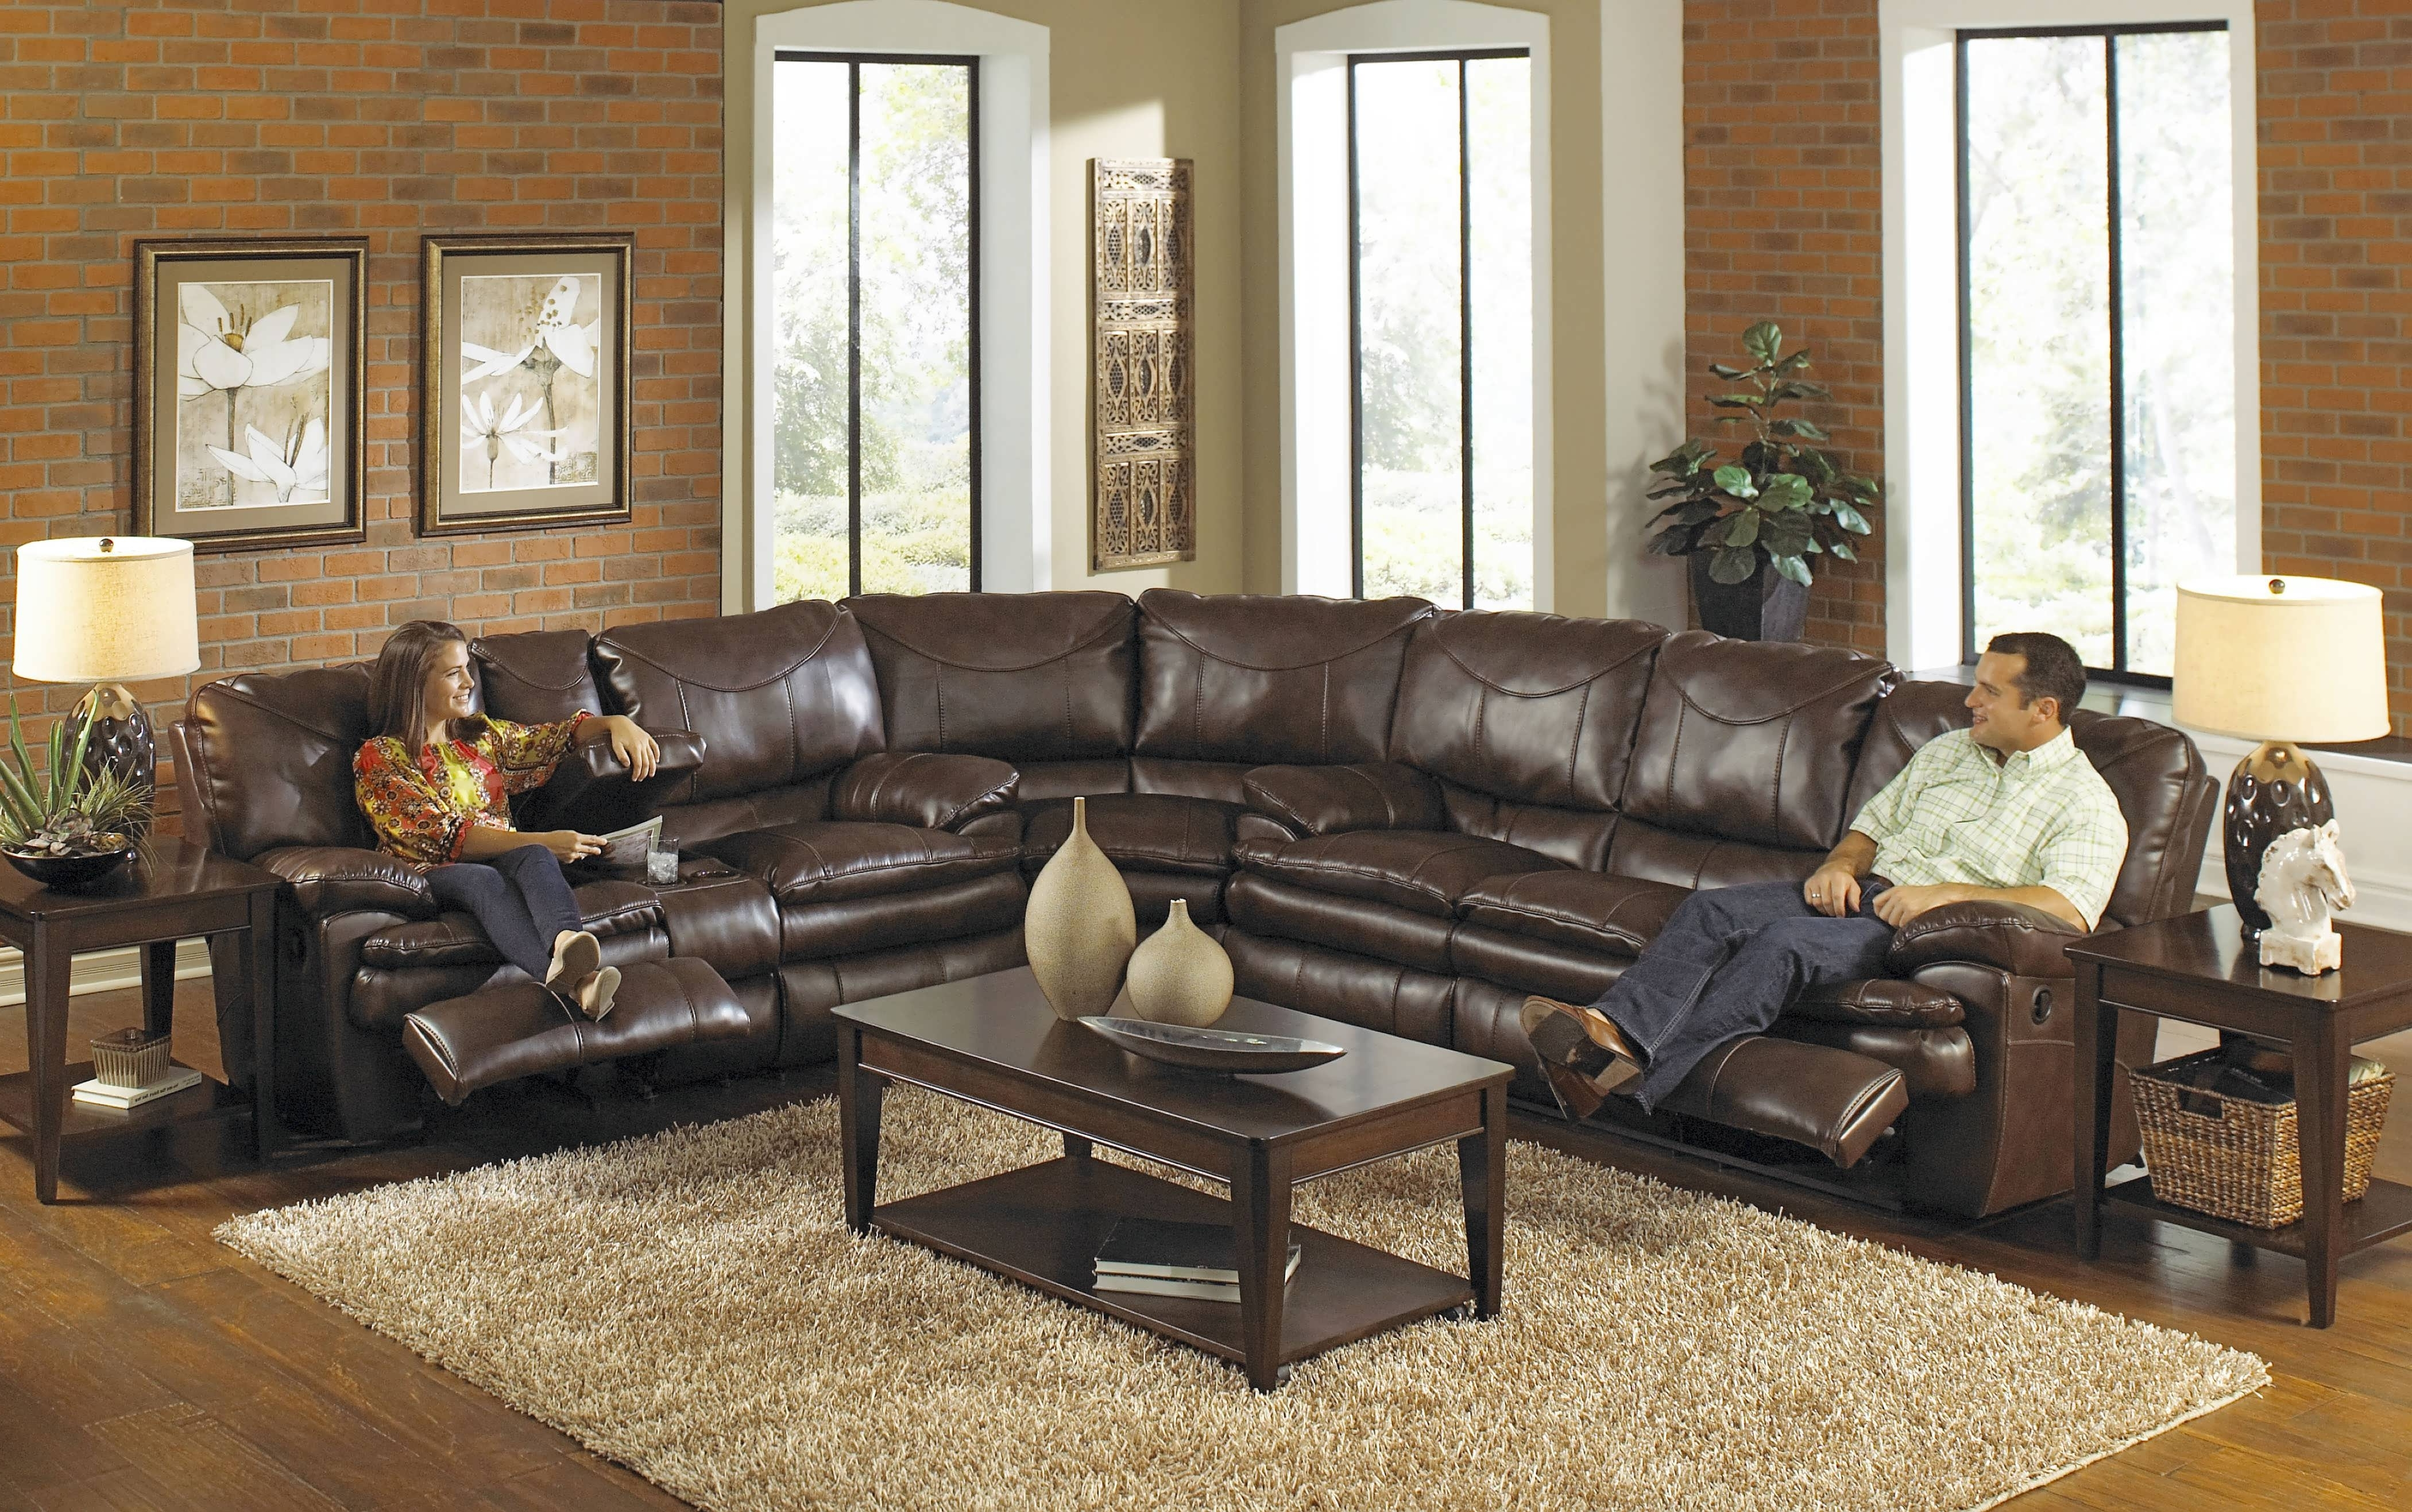 Popular Reclining Sectional Sofas Intended For Big Lots Furniture Reviews Reclining Sectional Sofas For Small (View 8 of 15)